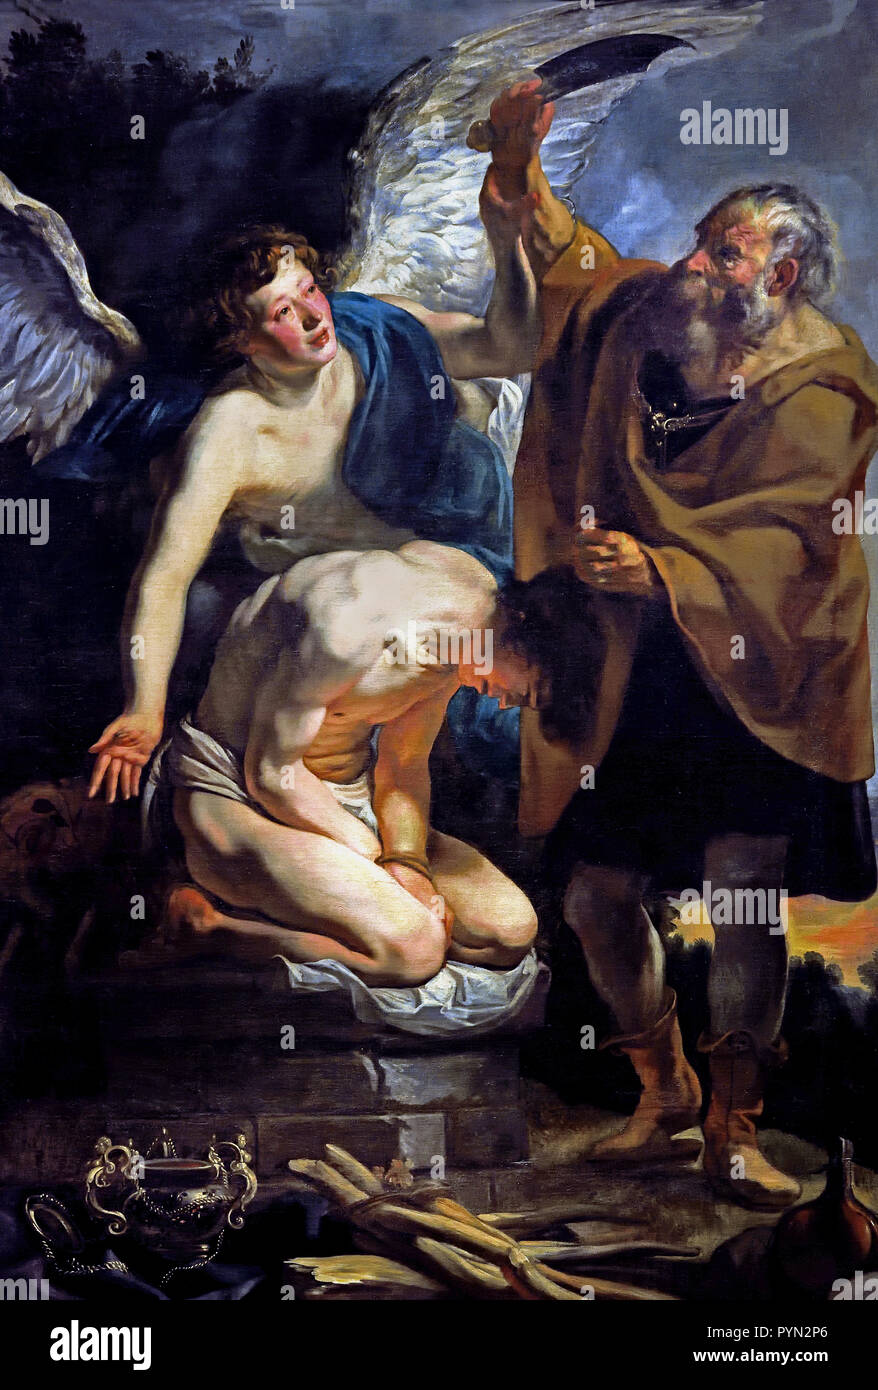 The Sacrifice of Isaac 1625 - 1626 by Jacob JORDAENS 1593 - 1678 Belgium Begian ( God asks Abraham to sacrifice his son, Isaac, on Moriah. Abraham begins to comply, when a messenger from God interrupts him. Abraham then sees a ram and sacrifices it instead. ) - Stock Image